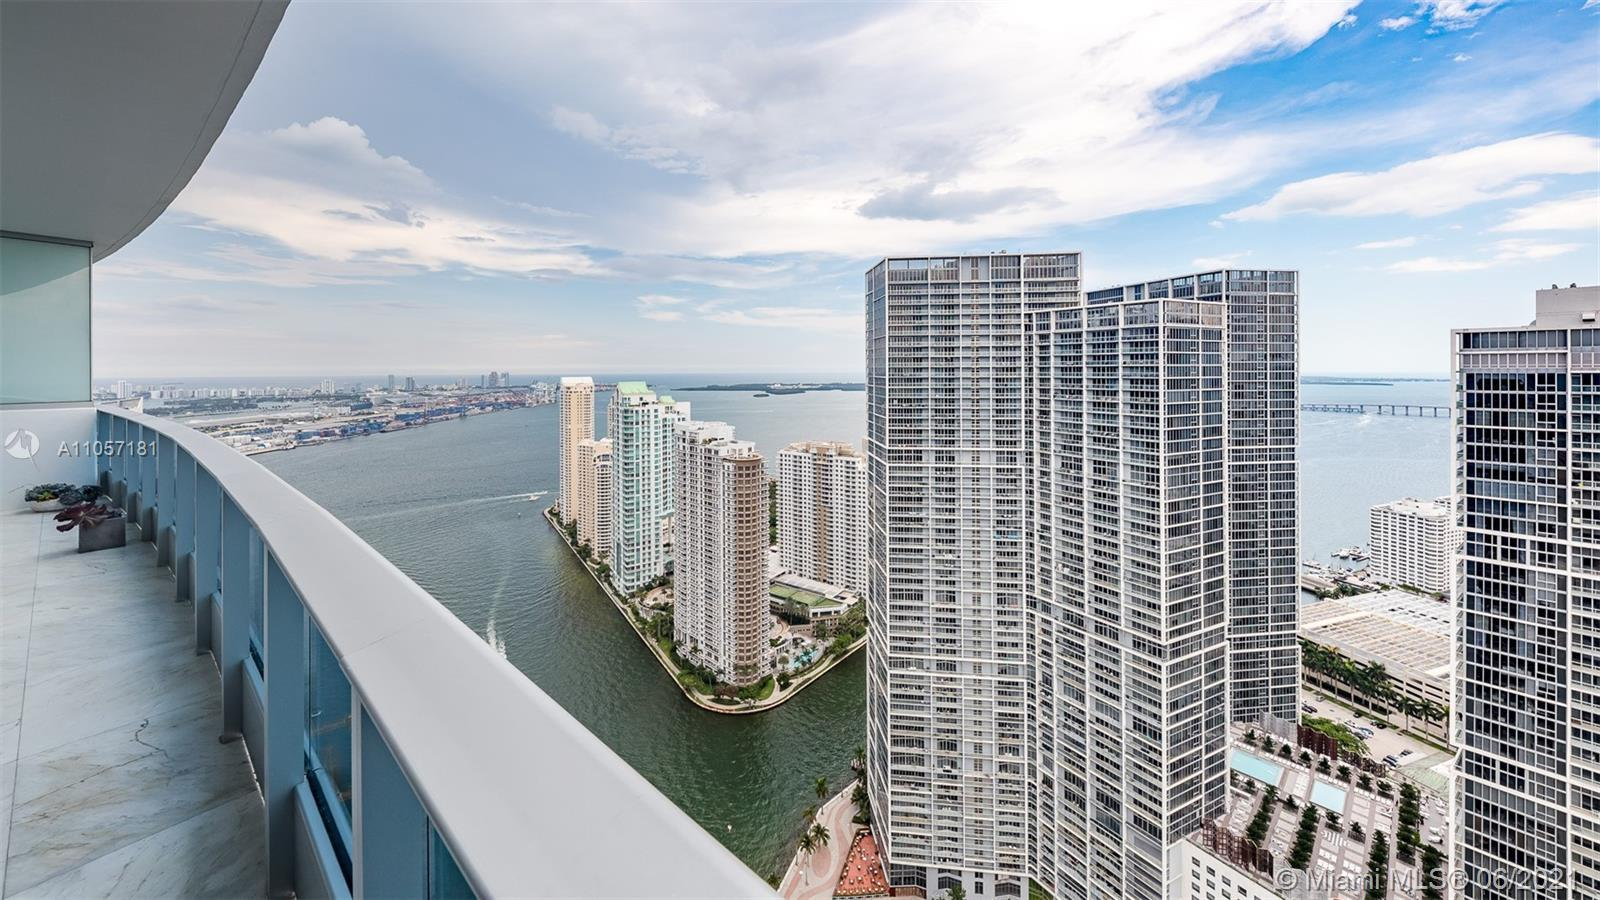 The Epic is located at the epicenter of Brickell world-class shopping, dining and the best entertain